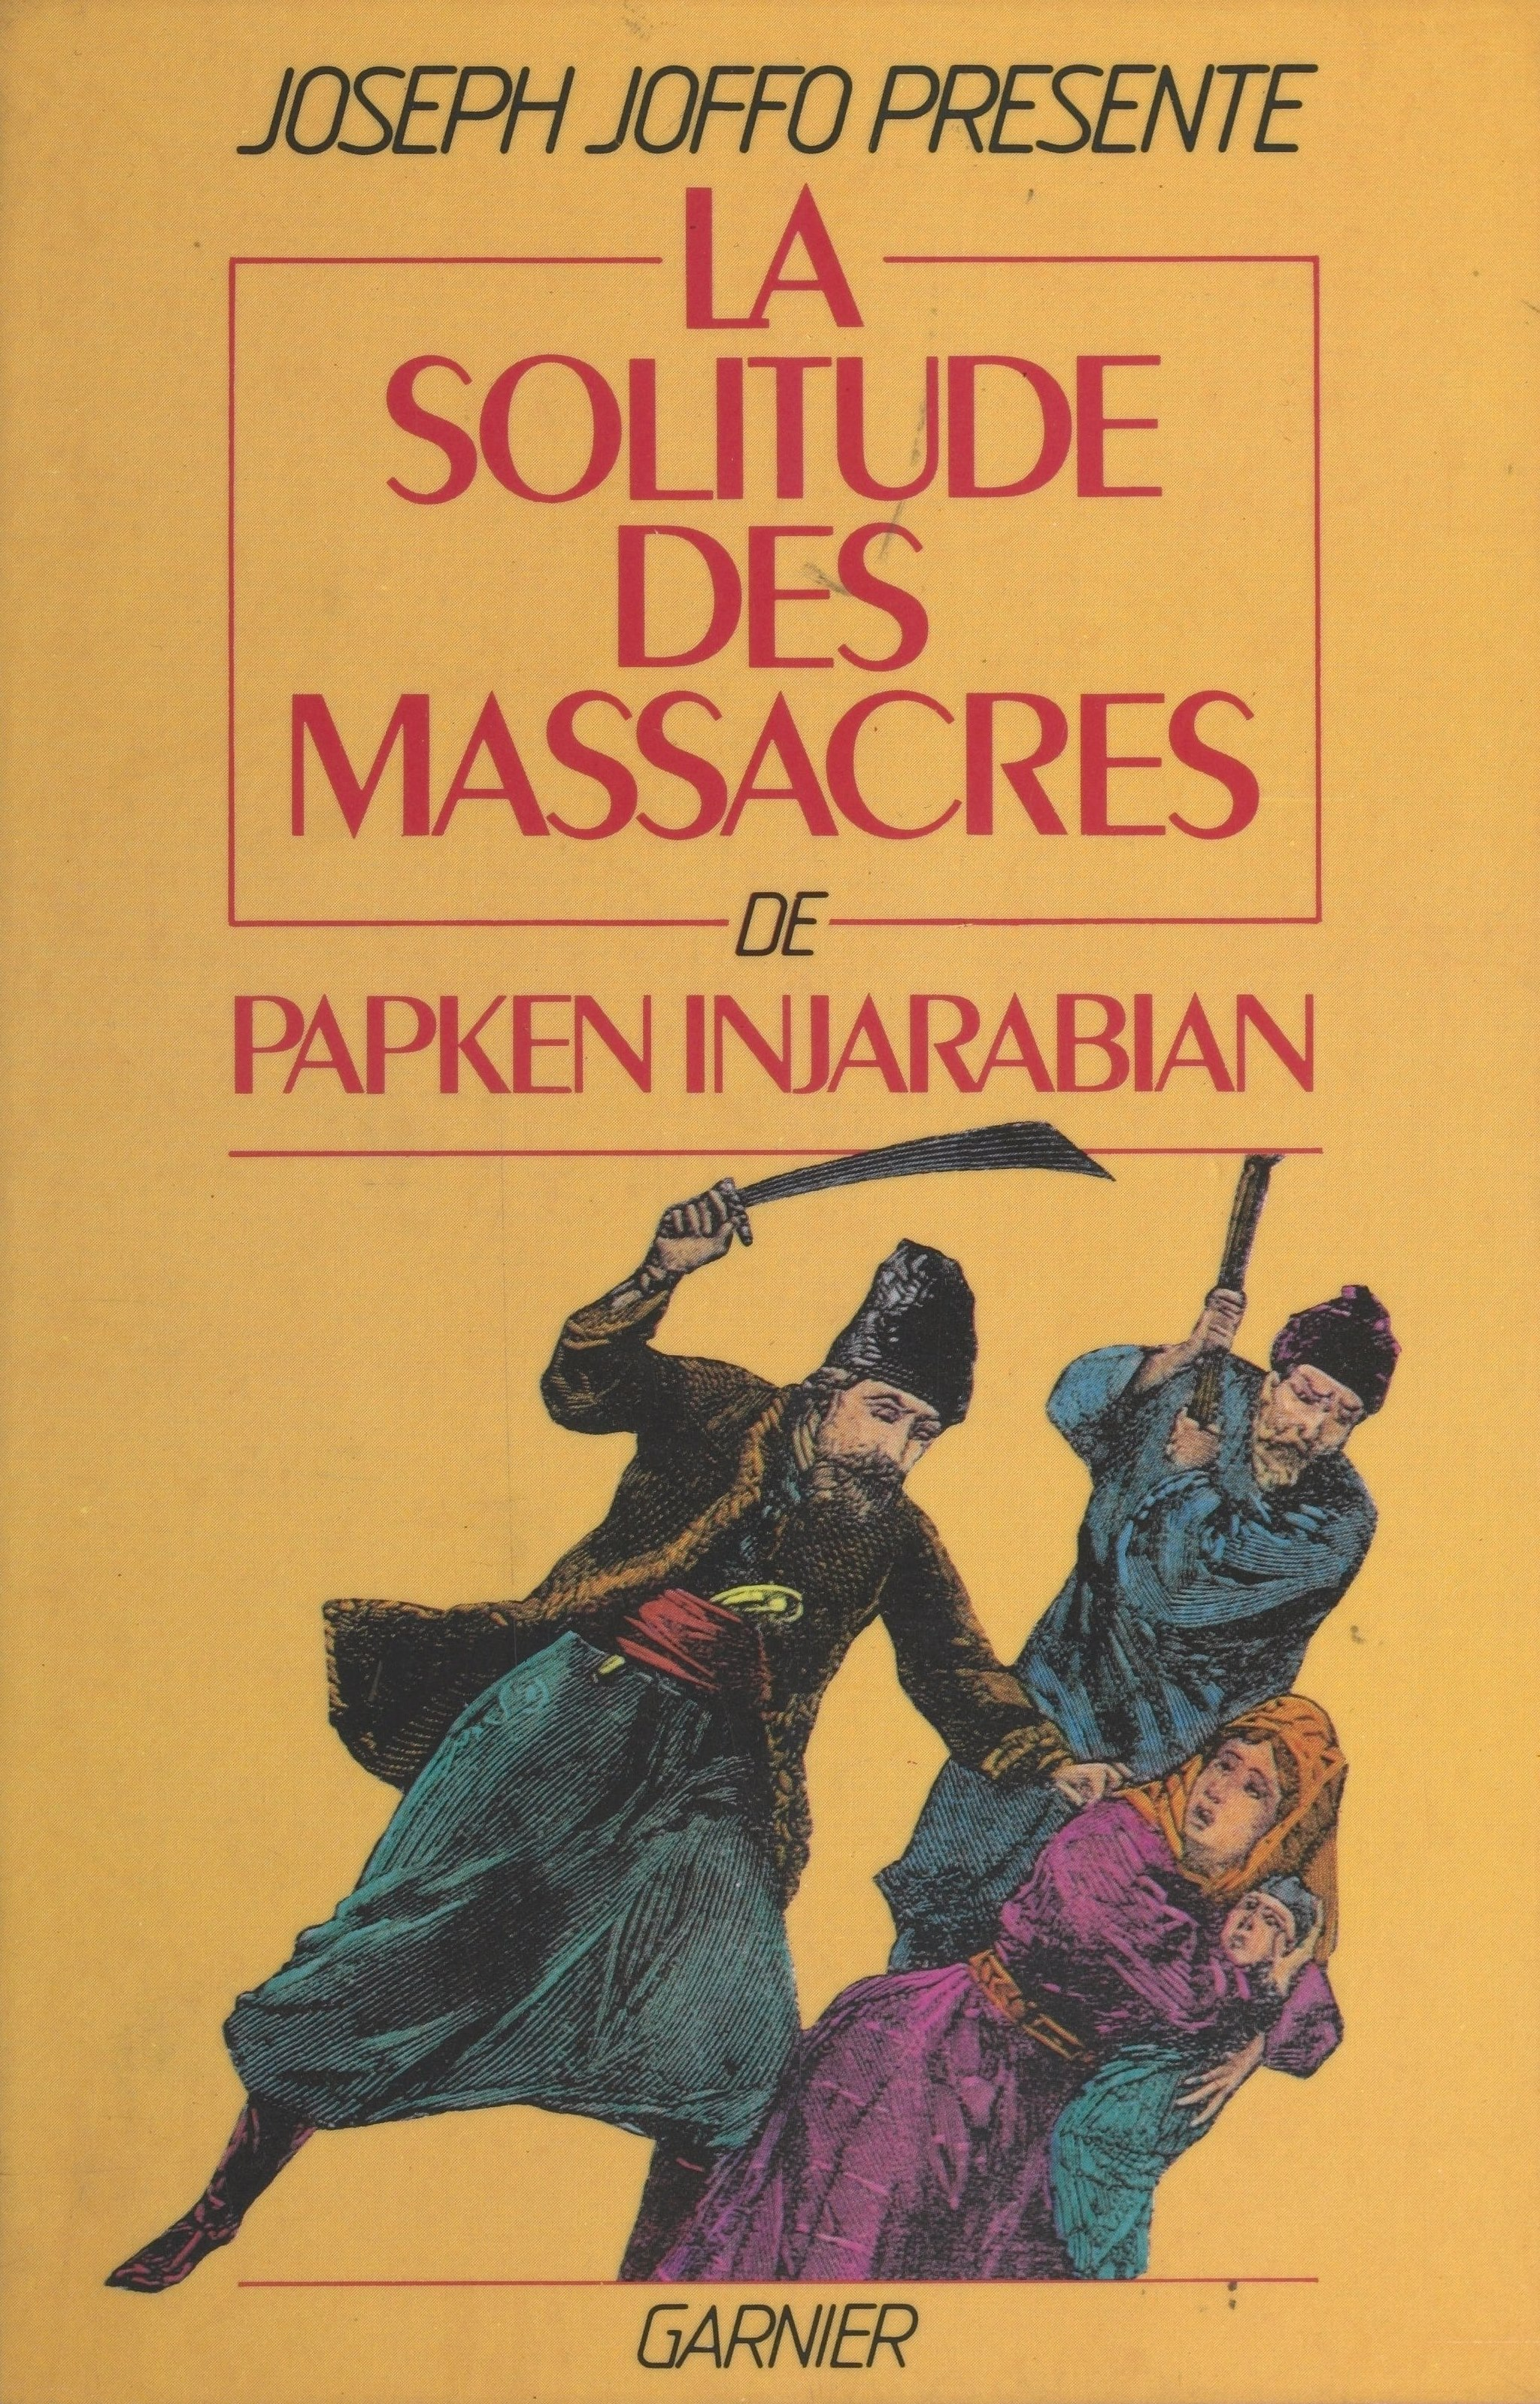 La Solitude des massacres